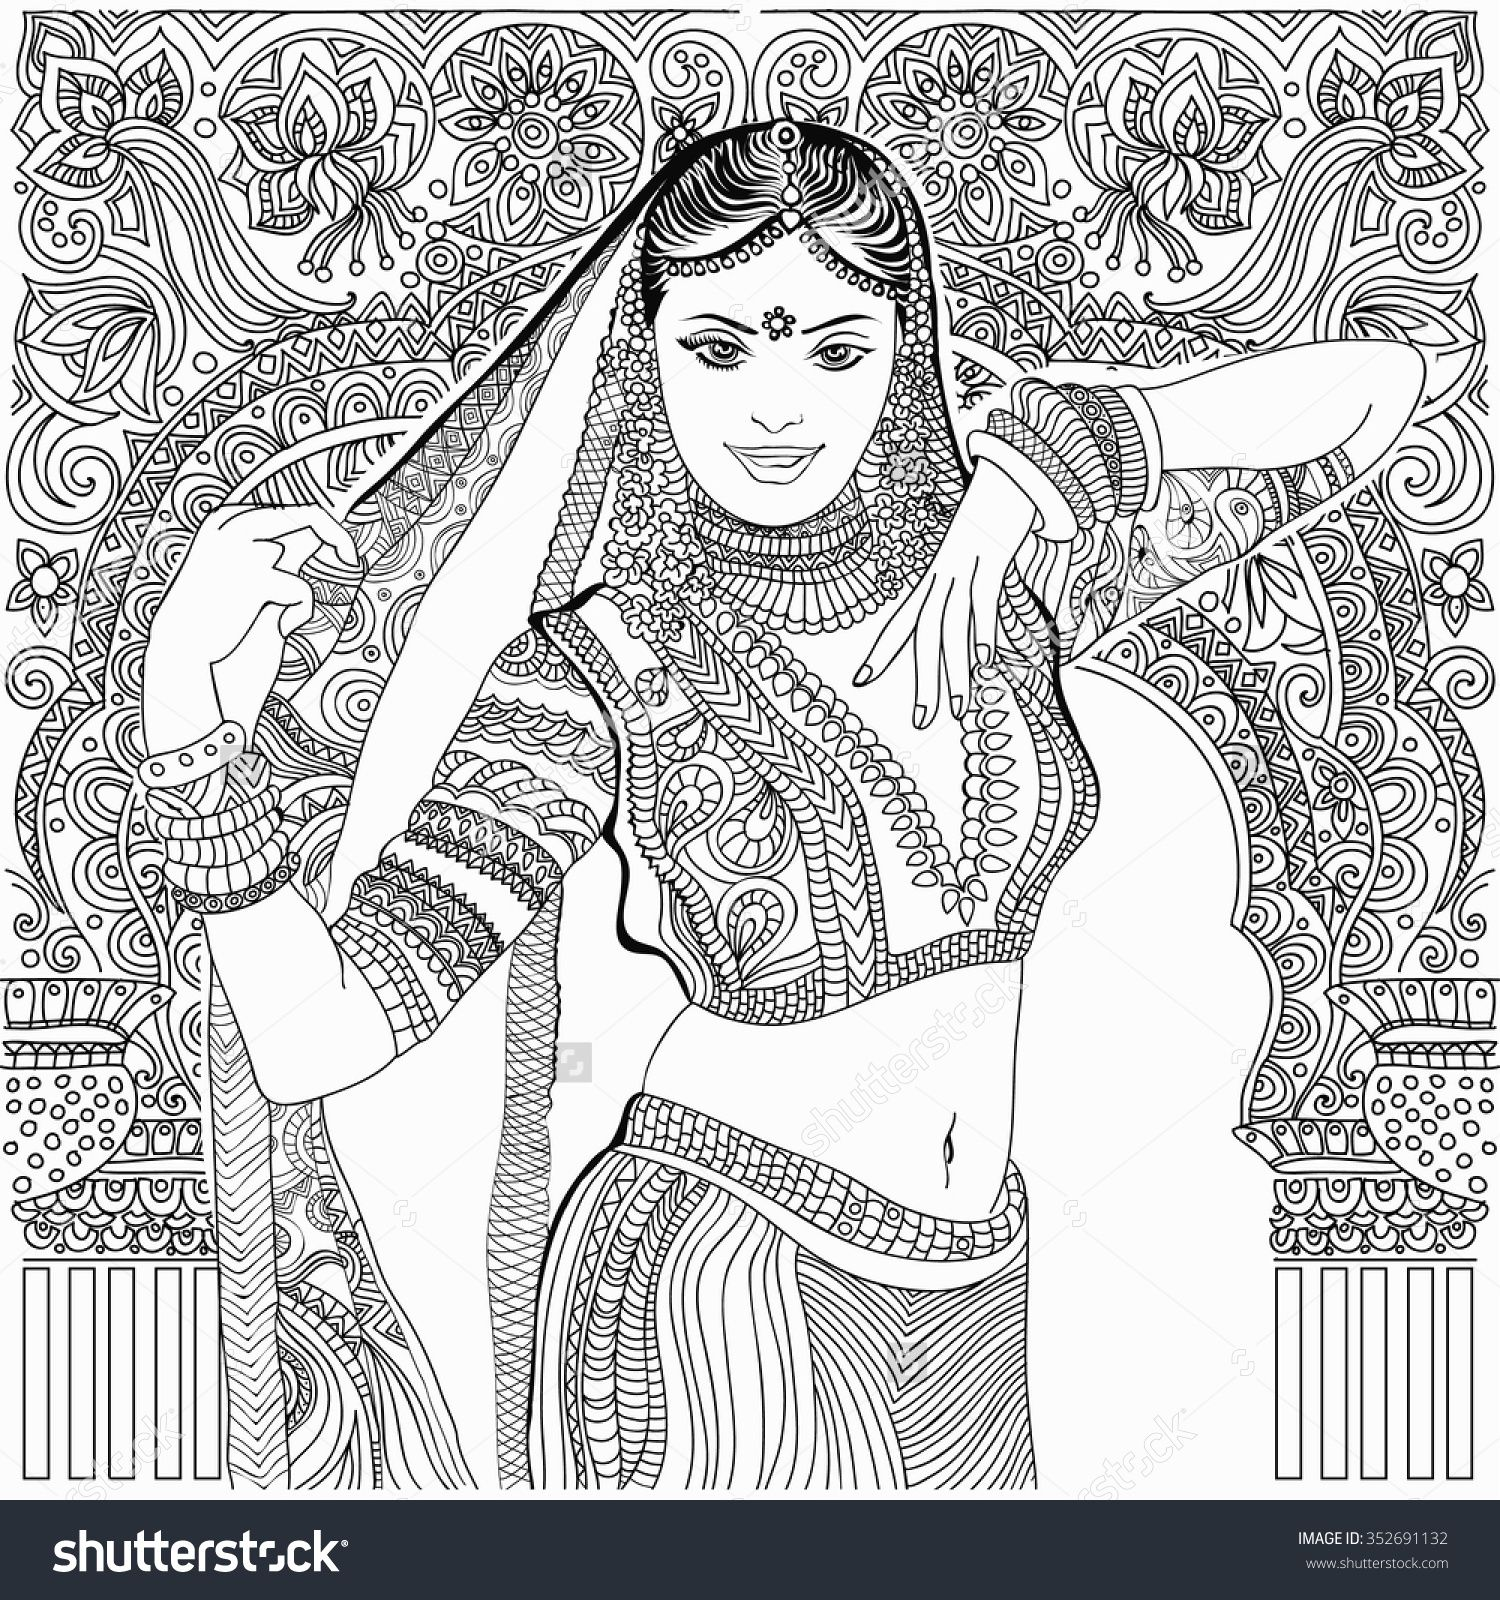 Beautiful Indian Woman Coloring Page Dance Coloring Pages Feminism Art Dancing Drawings